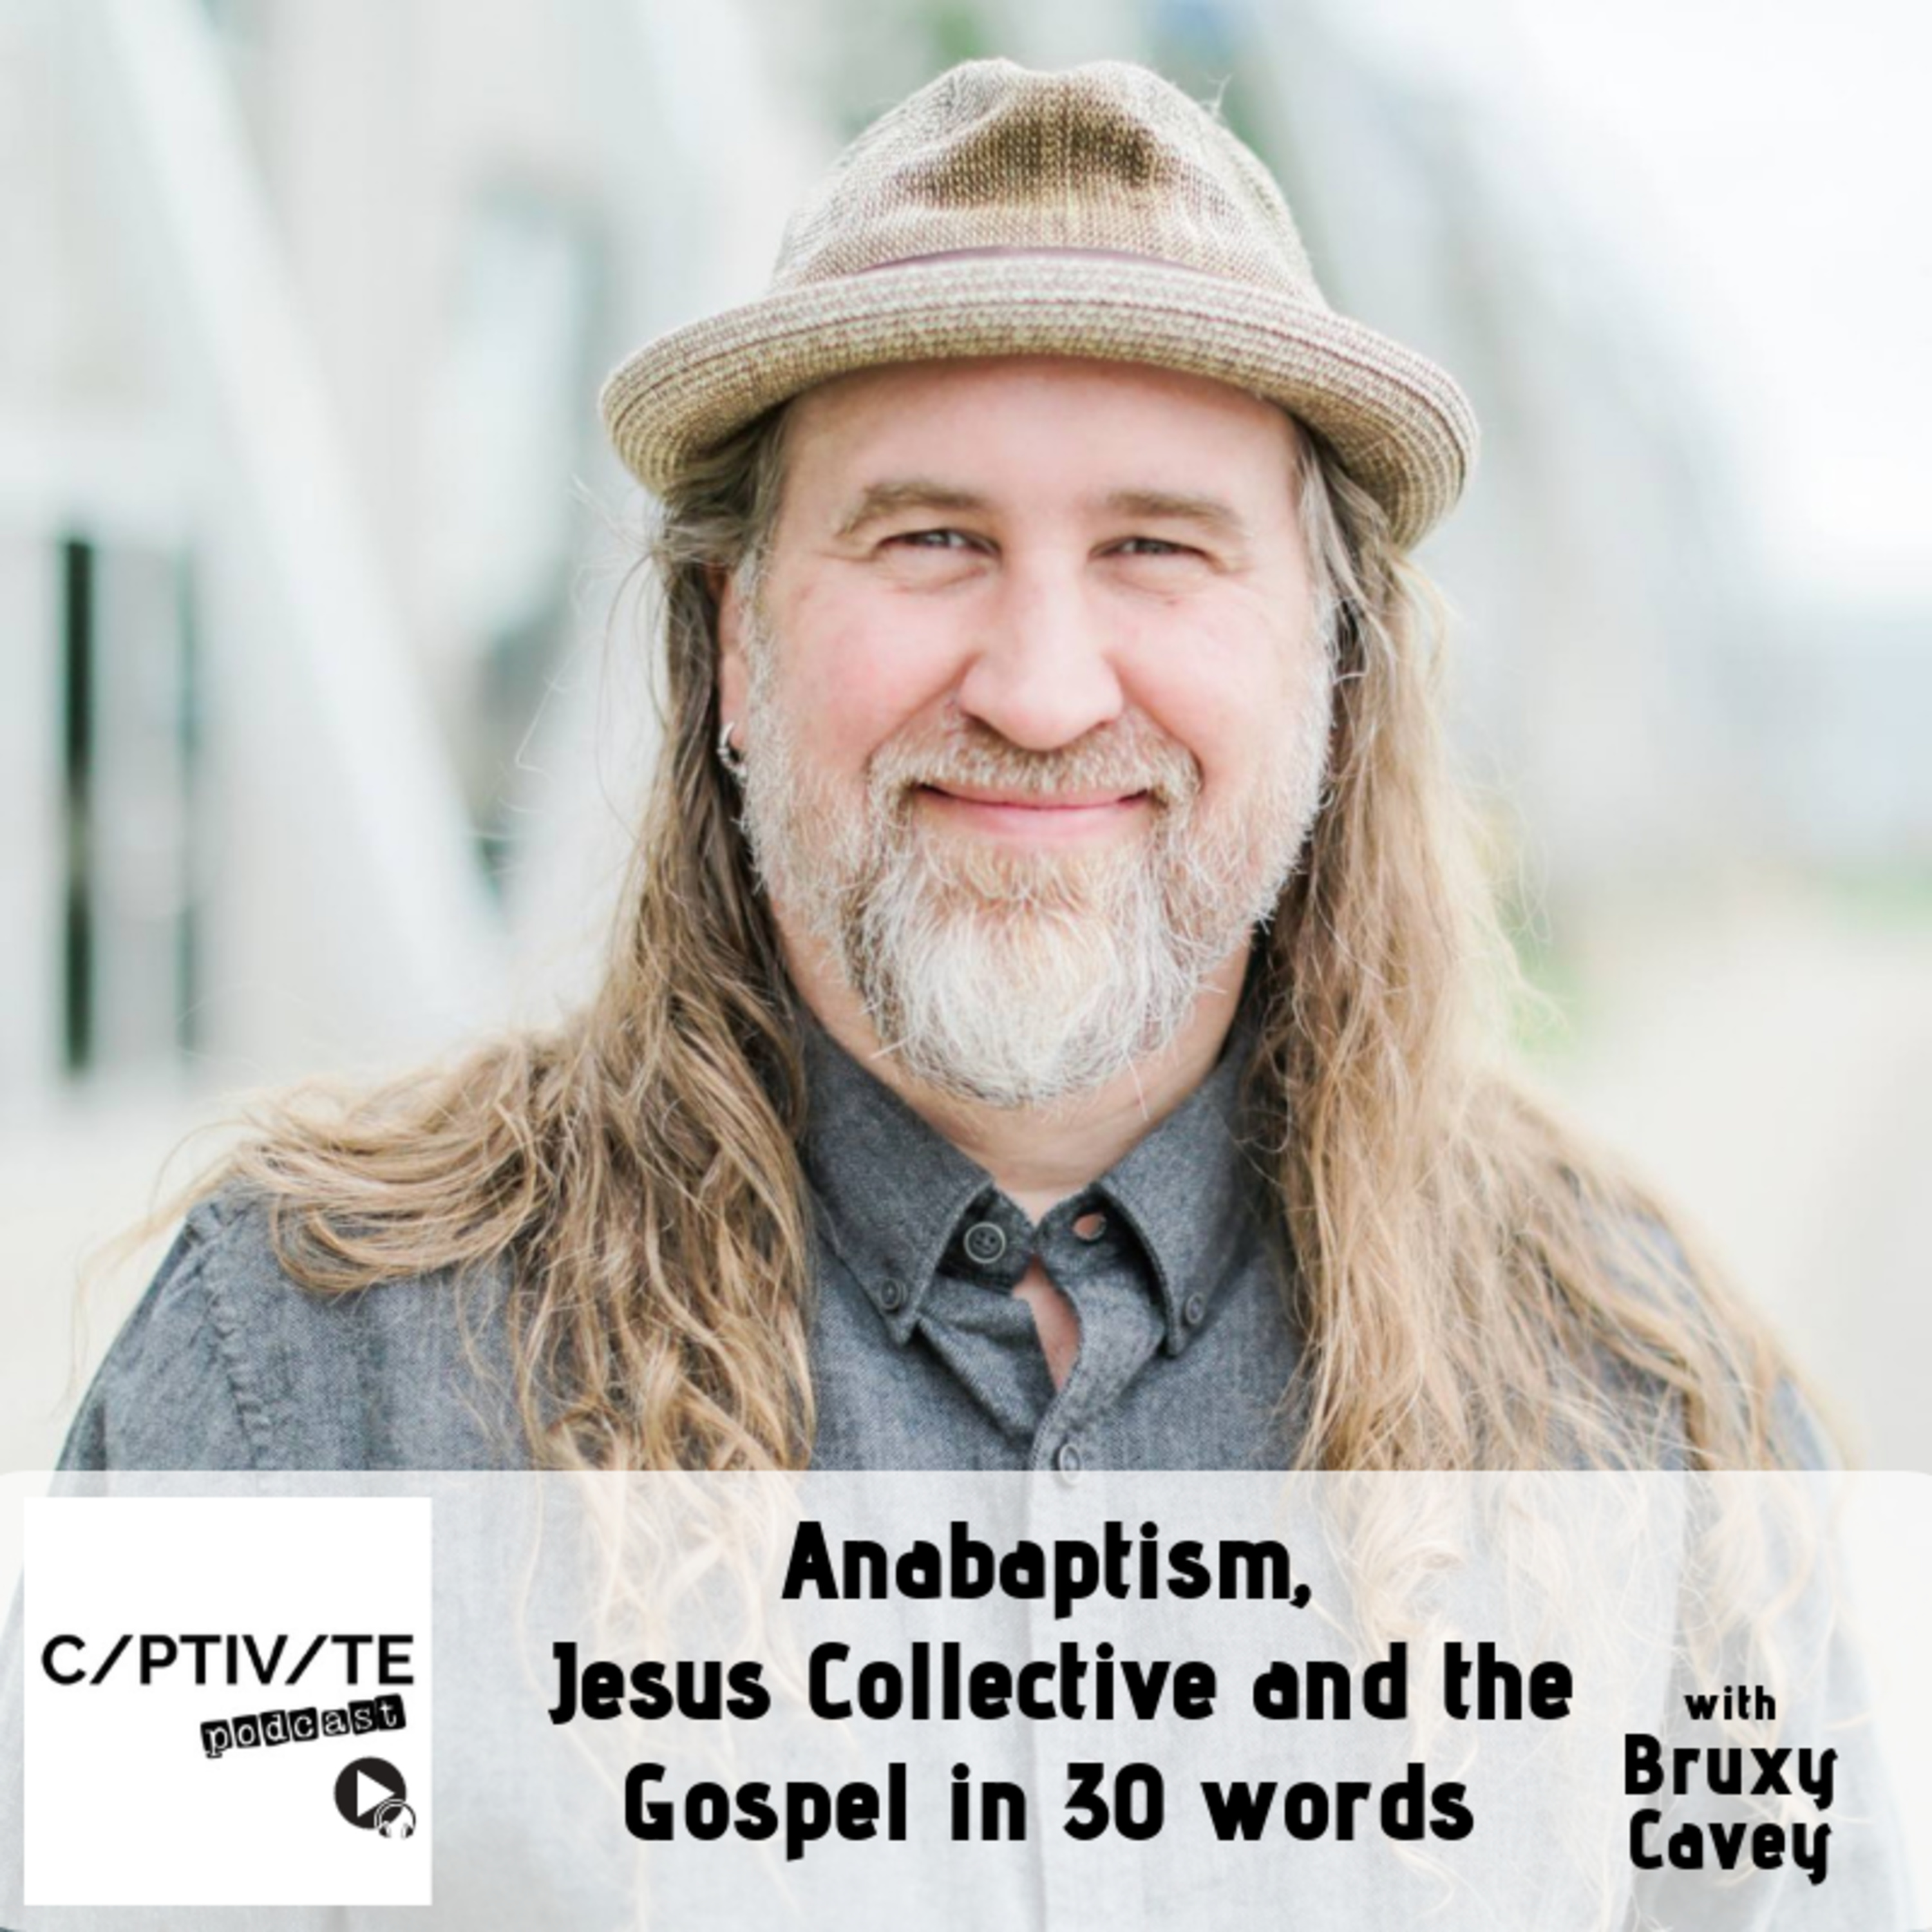 CP 12: Bruxy Cavey - Anabaptism, Jesus Collective and the Gospel in 30 words